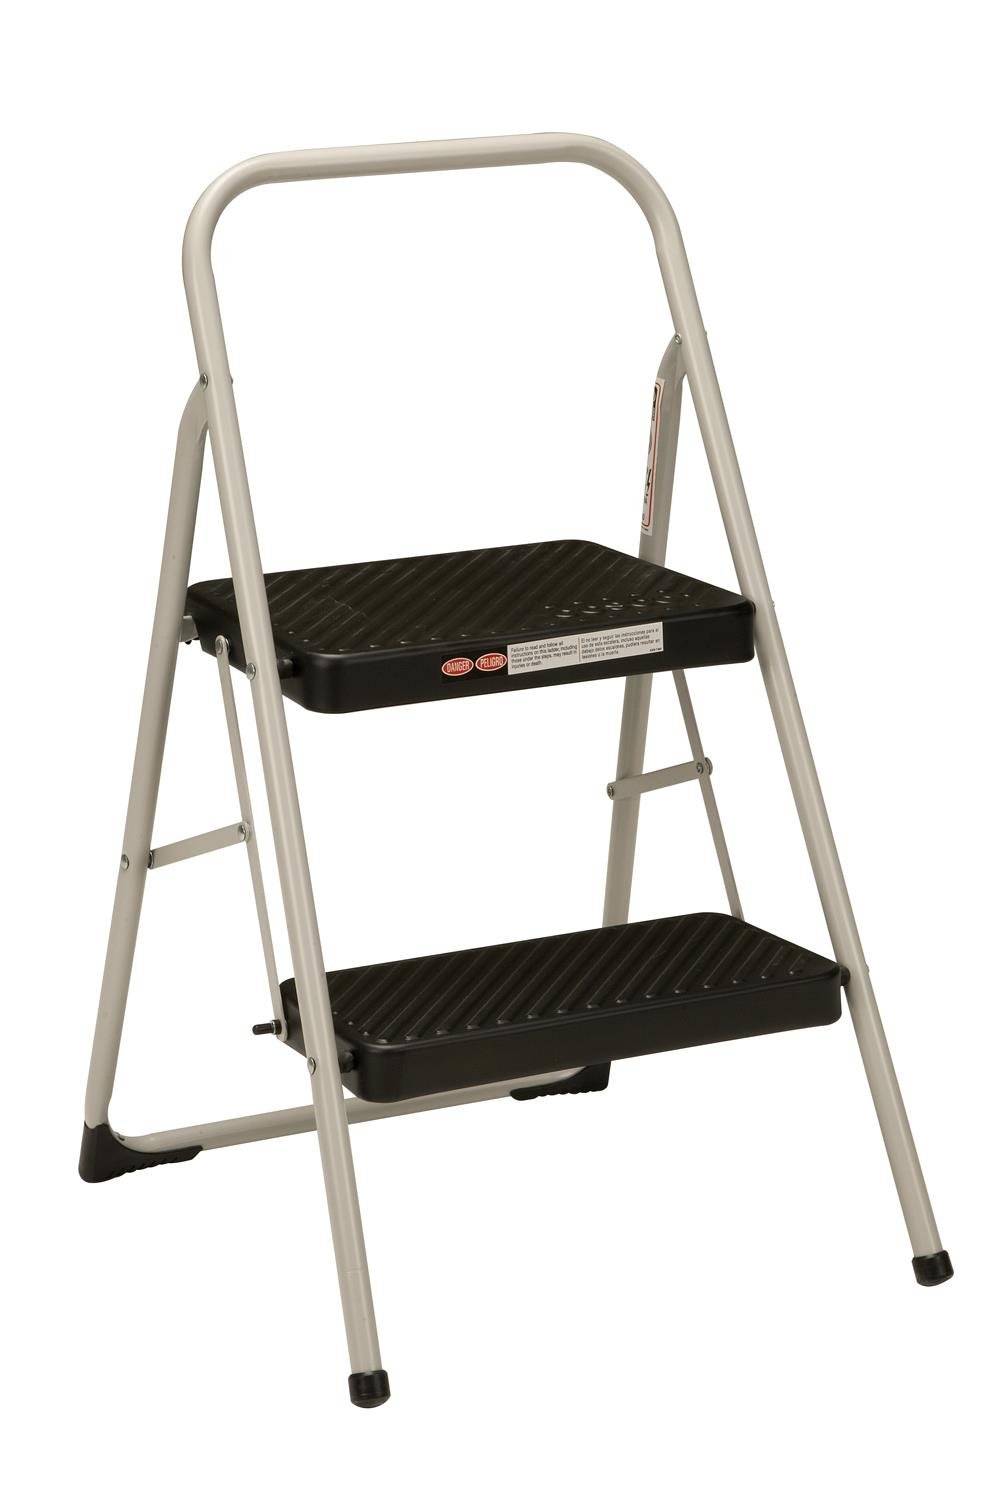 Cosco 2-Step Household Folding Step Stool by Cosco